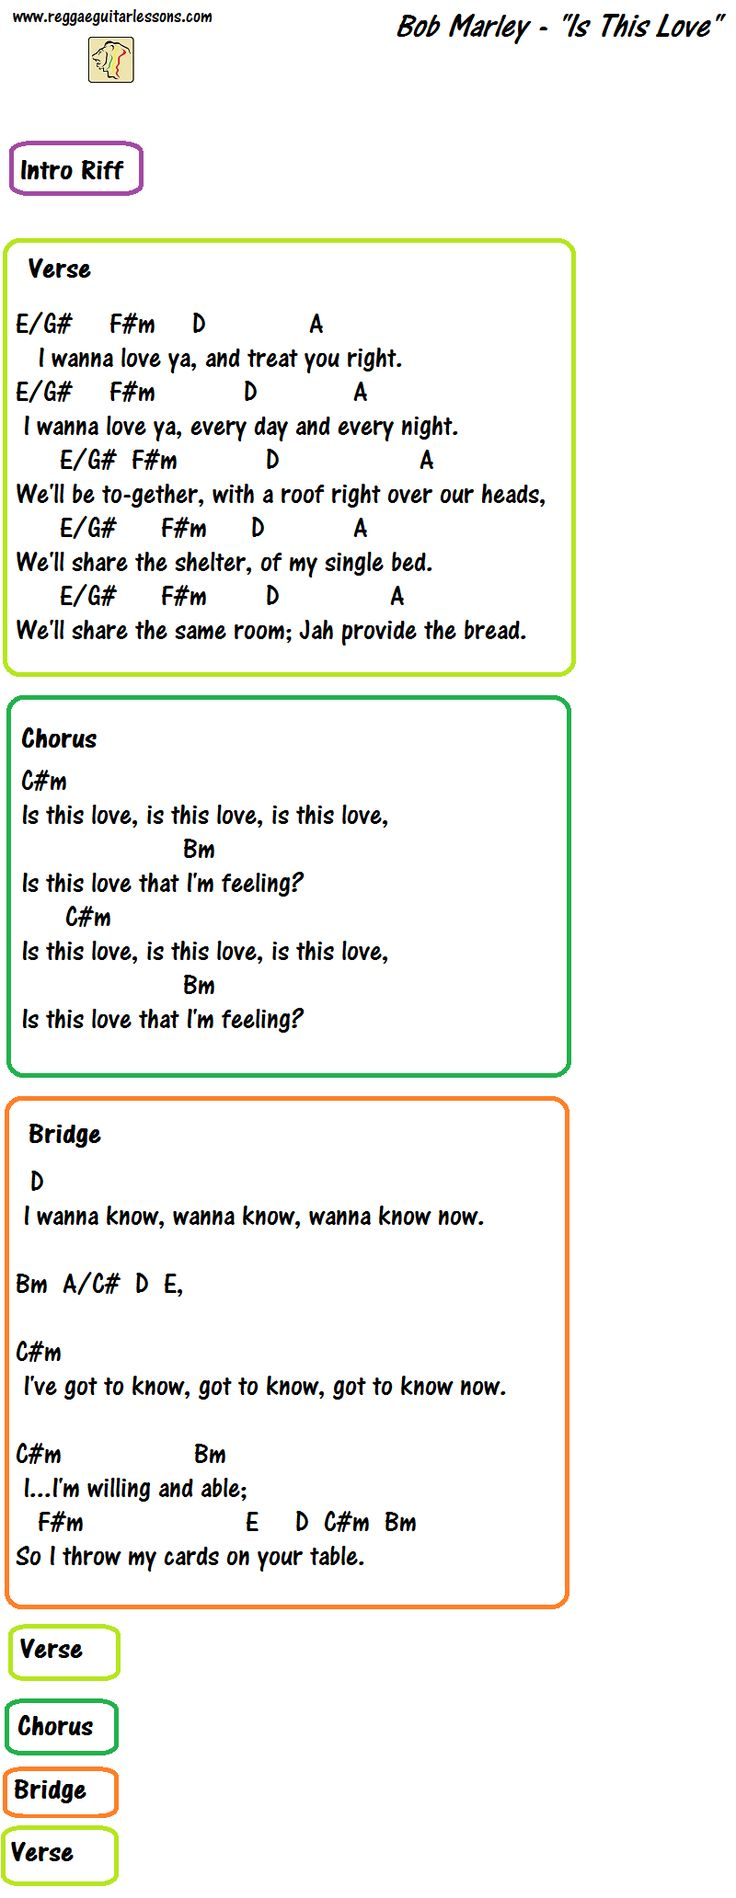 """""""Is this love"""" Chords - Bob Marley"""